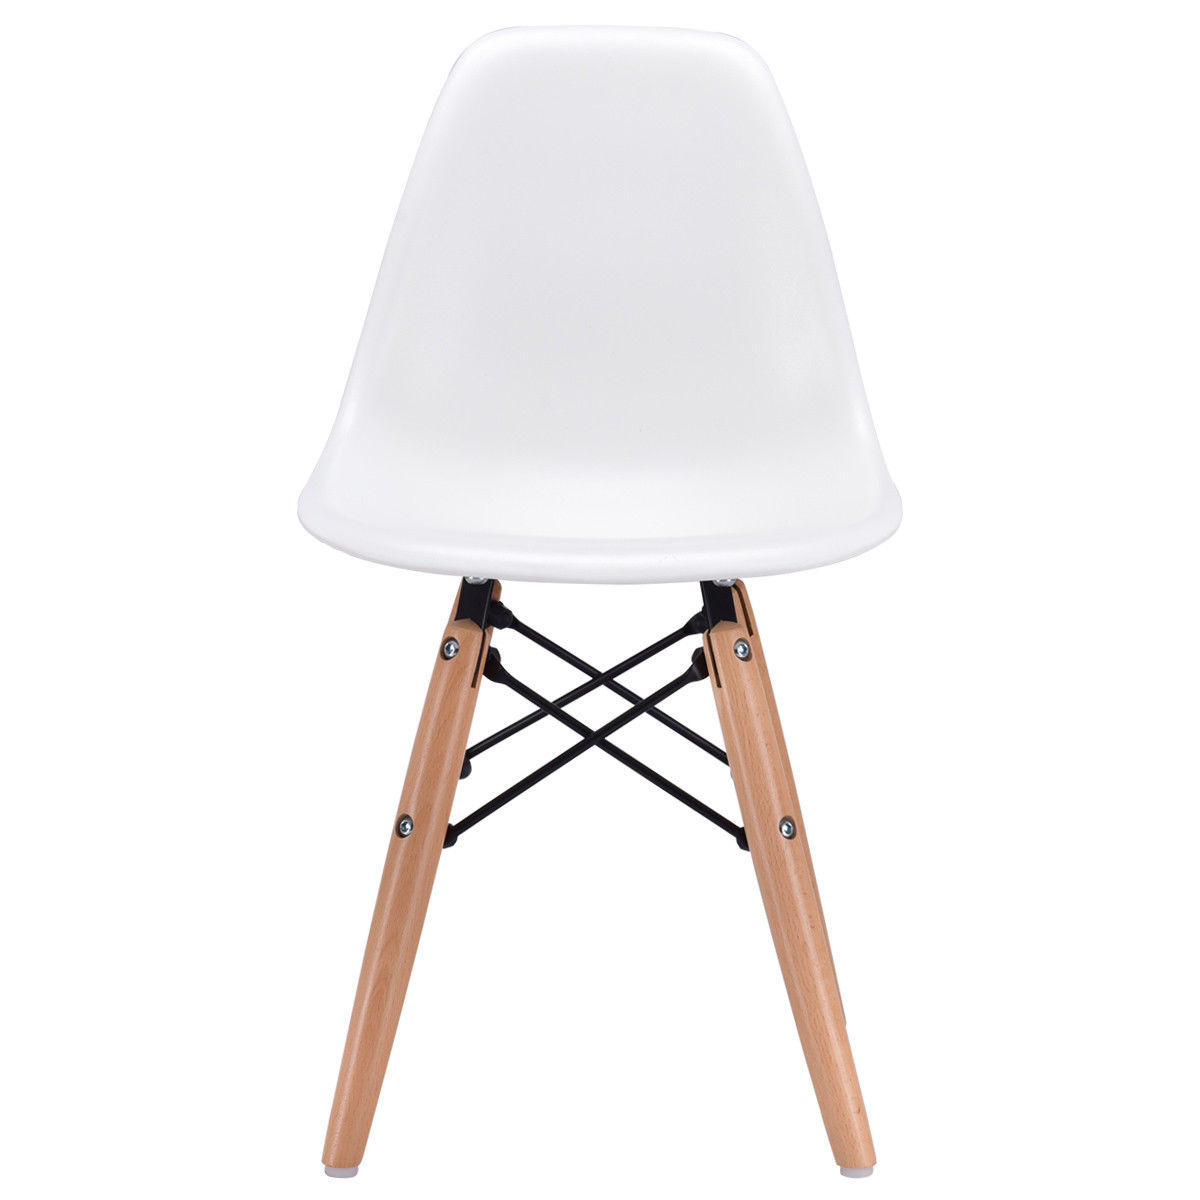 Giantex Kids Dining Side Armless Chair Modern Molded Plastic Seat Wood Legs  White Children Chairs Home Furniture HW56499WH In Children Chairs From  Furniture ...